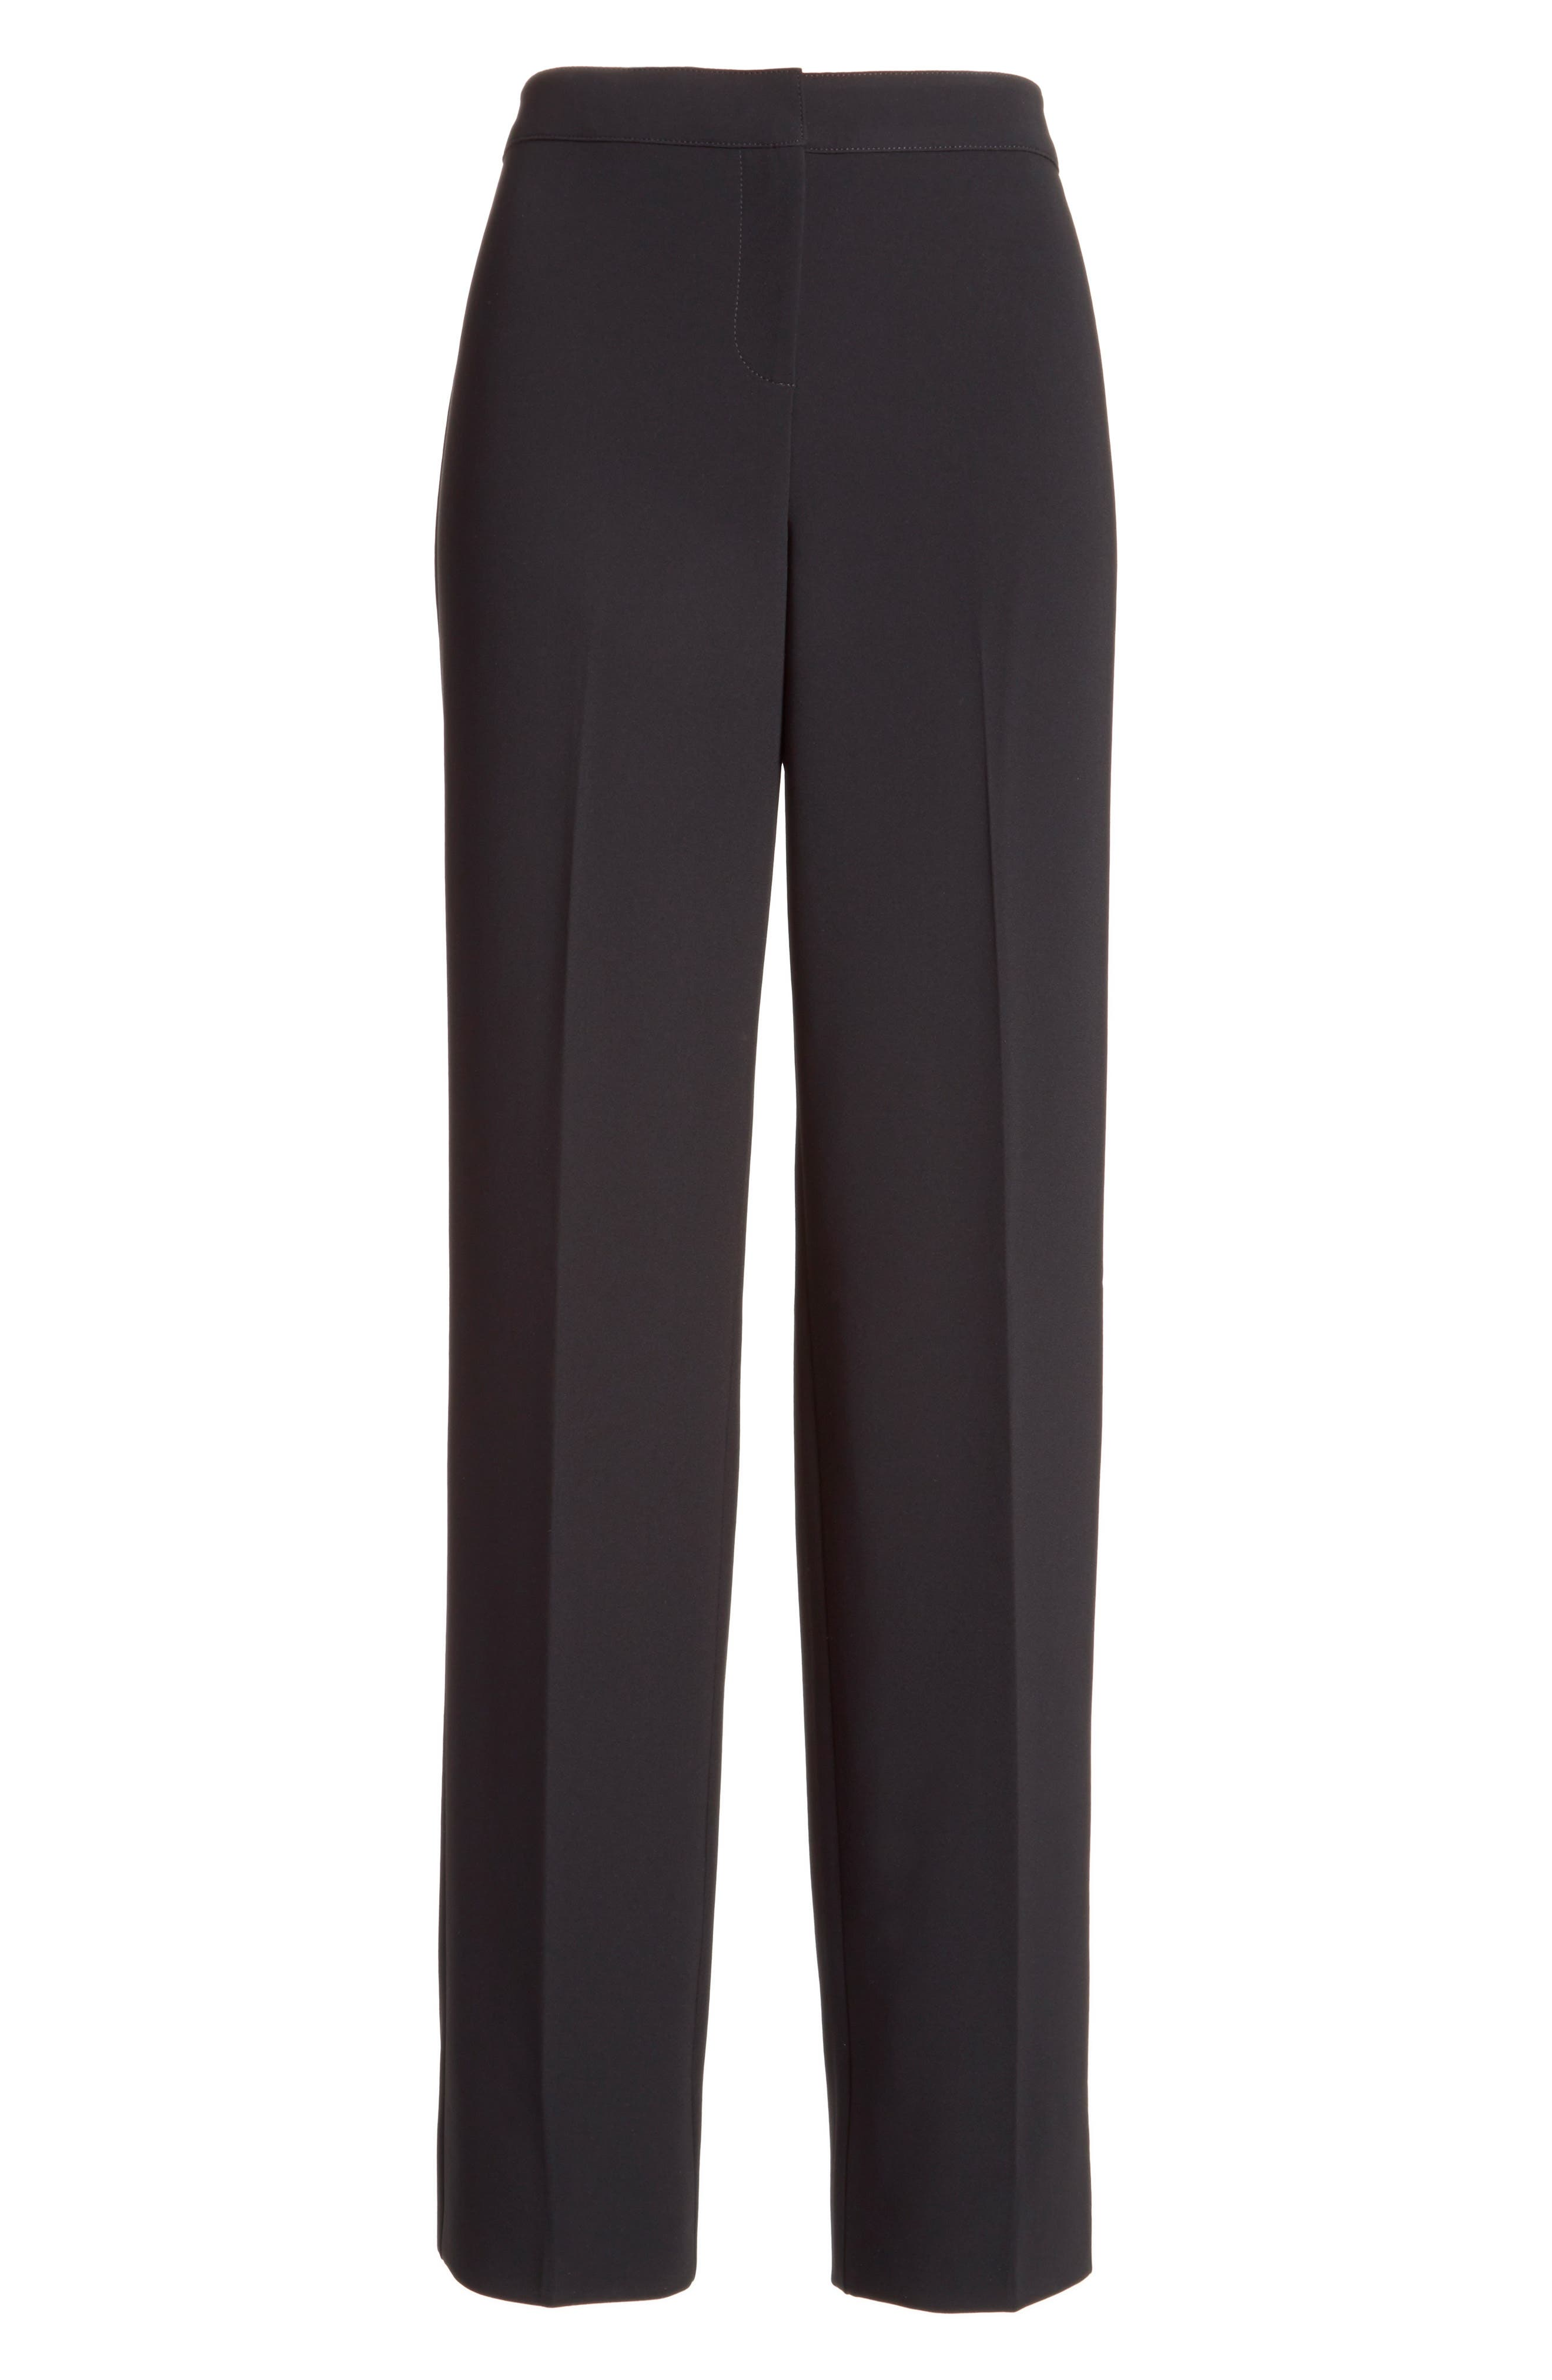 ST. JOHN COLLECTION, Diana Straight Leg Crepe Marocain Pants, Alternate thumbnail 7, color, CAVIAR